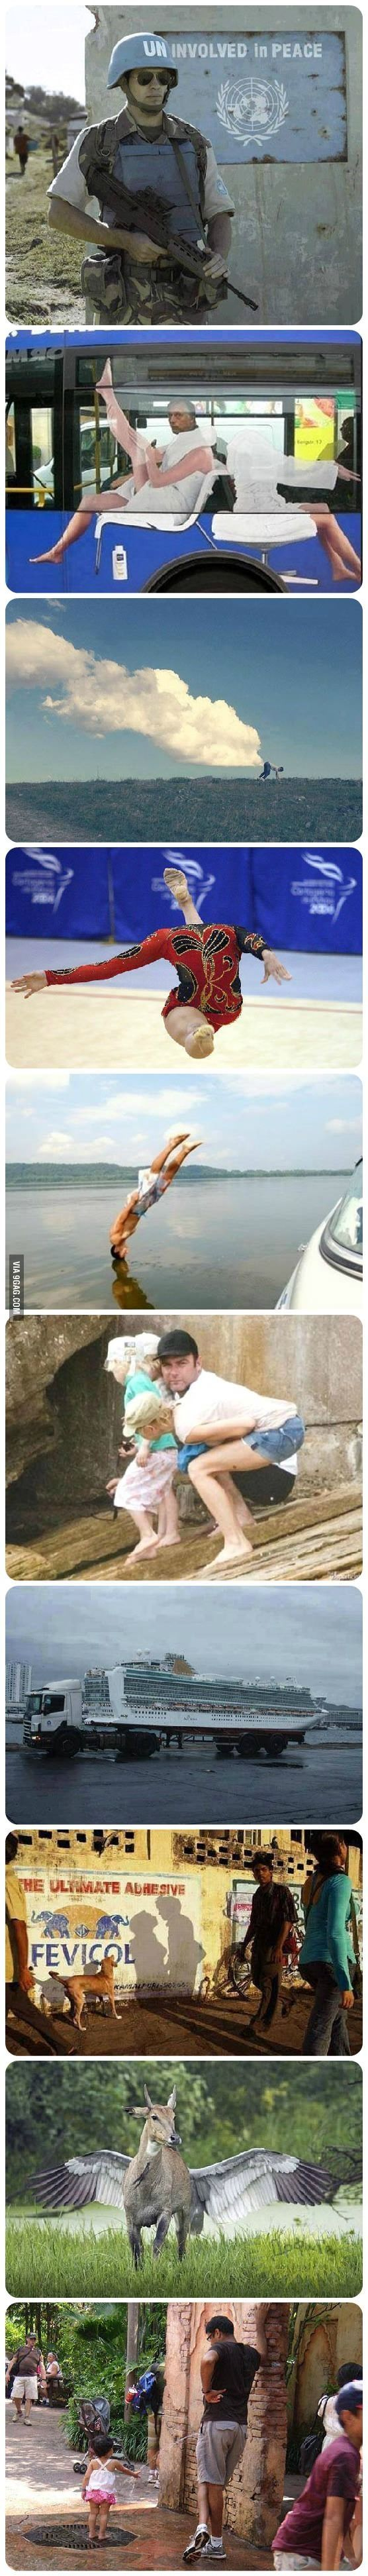 Perfectly timed pictures